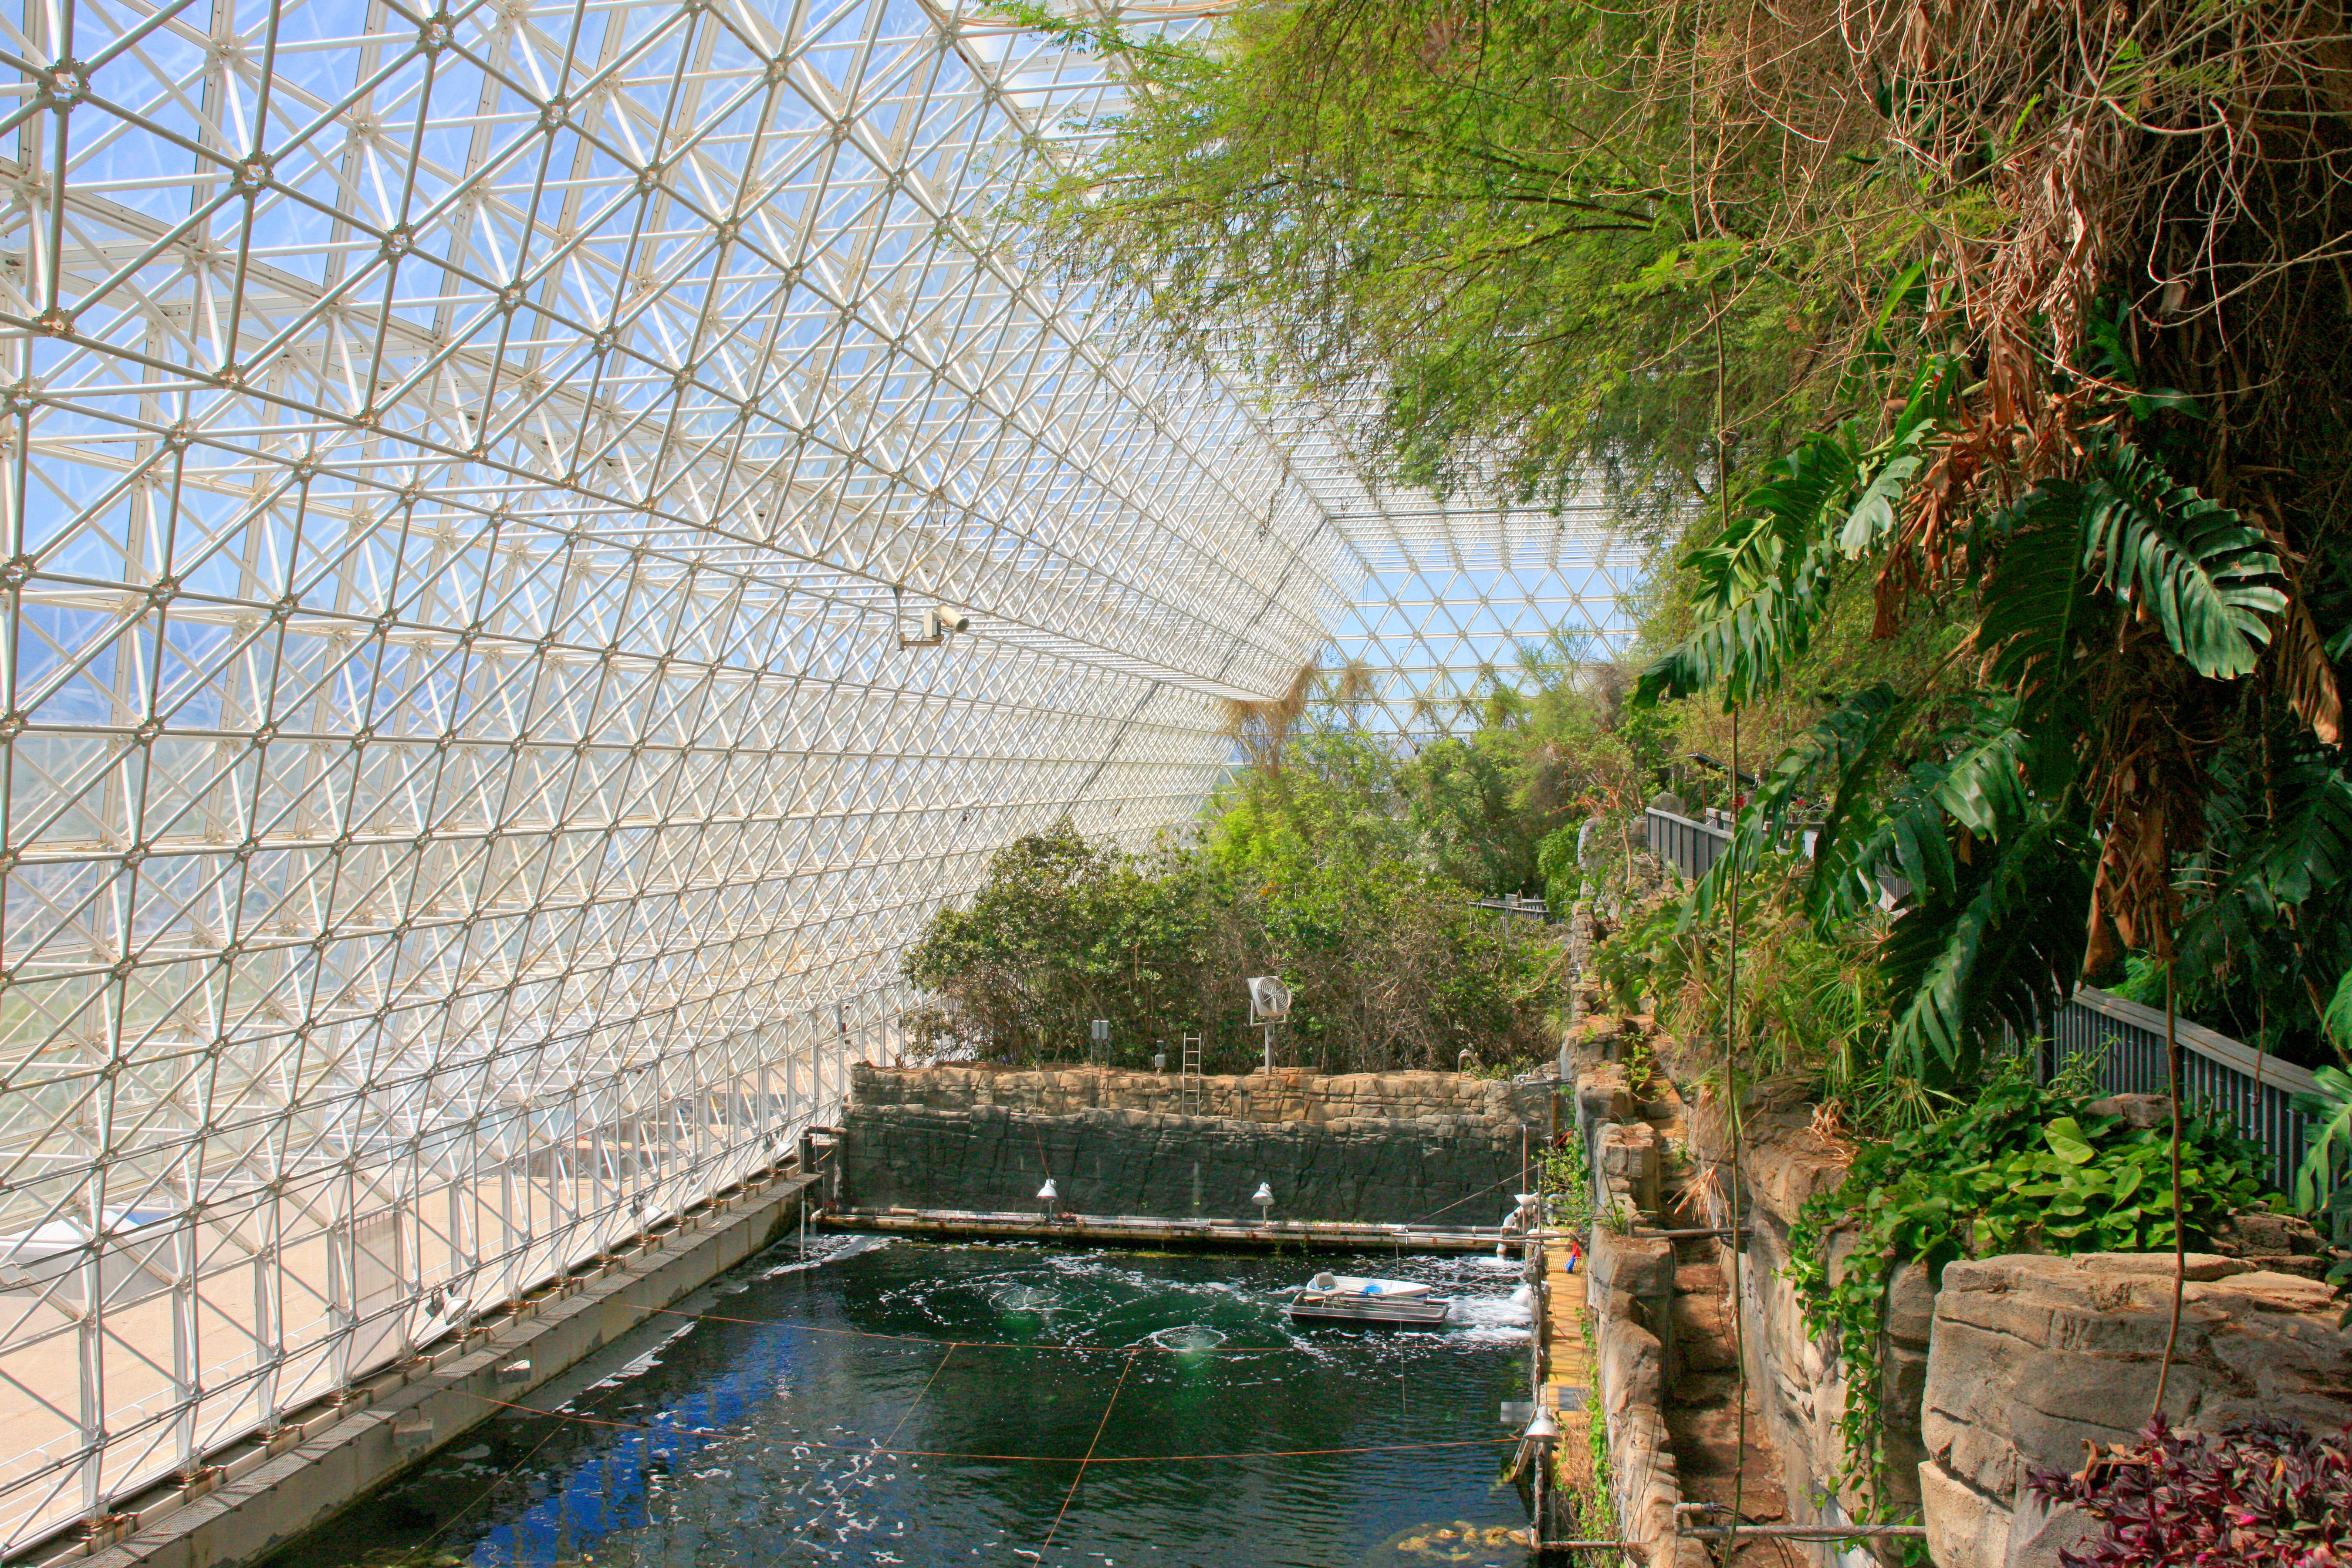 The rainforest area at Biosphere 2.